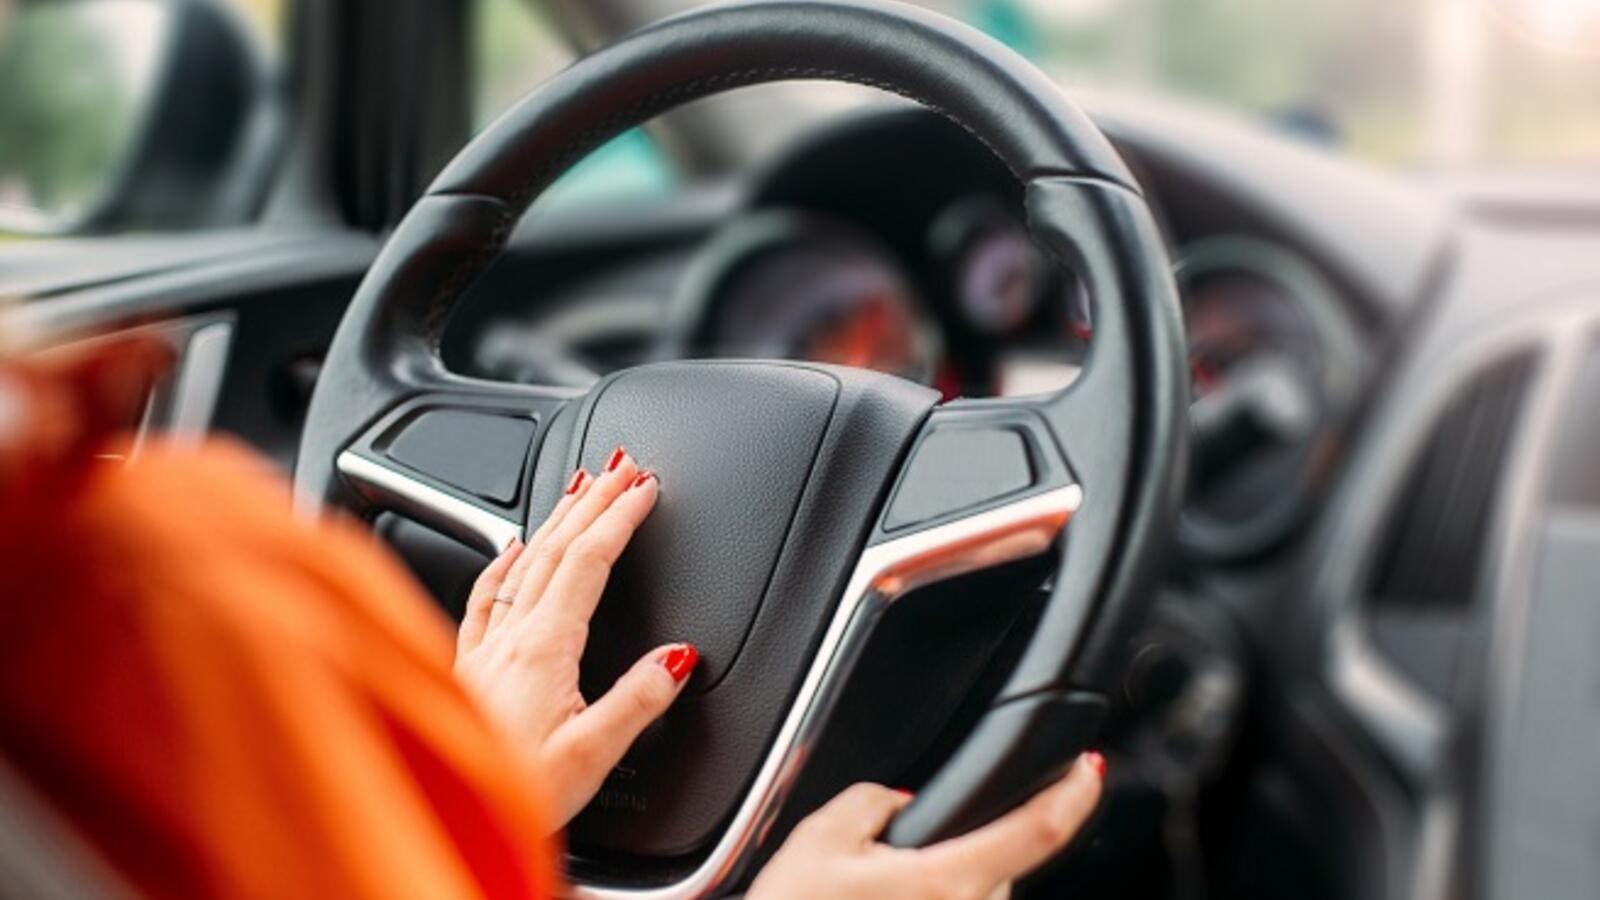 A quarter of women in Saudi Arabia have already applied for a driving license and of those who have not, 3 in 5 intend to apply. Among these new drivers, the majority (78%) plan to buy a car. (Shutterstock)